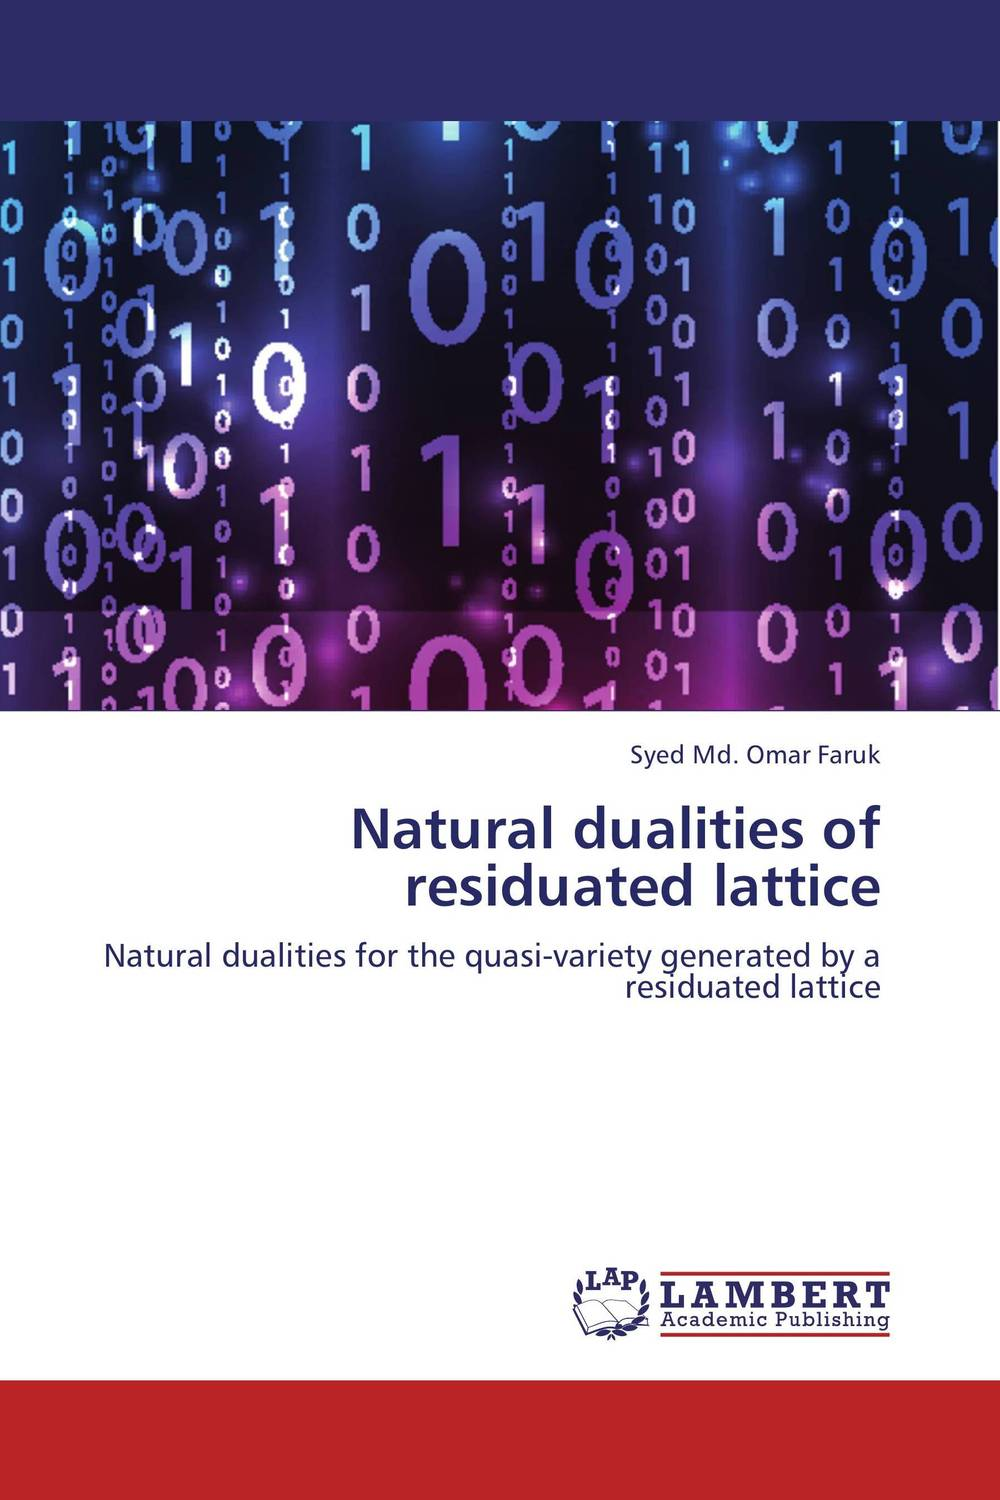 Natural dualities of residuated lattice module amenability of banach algebras